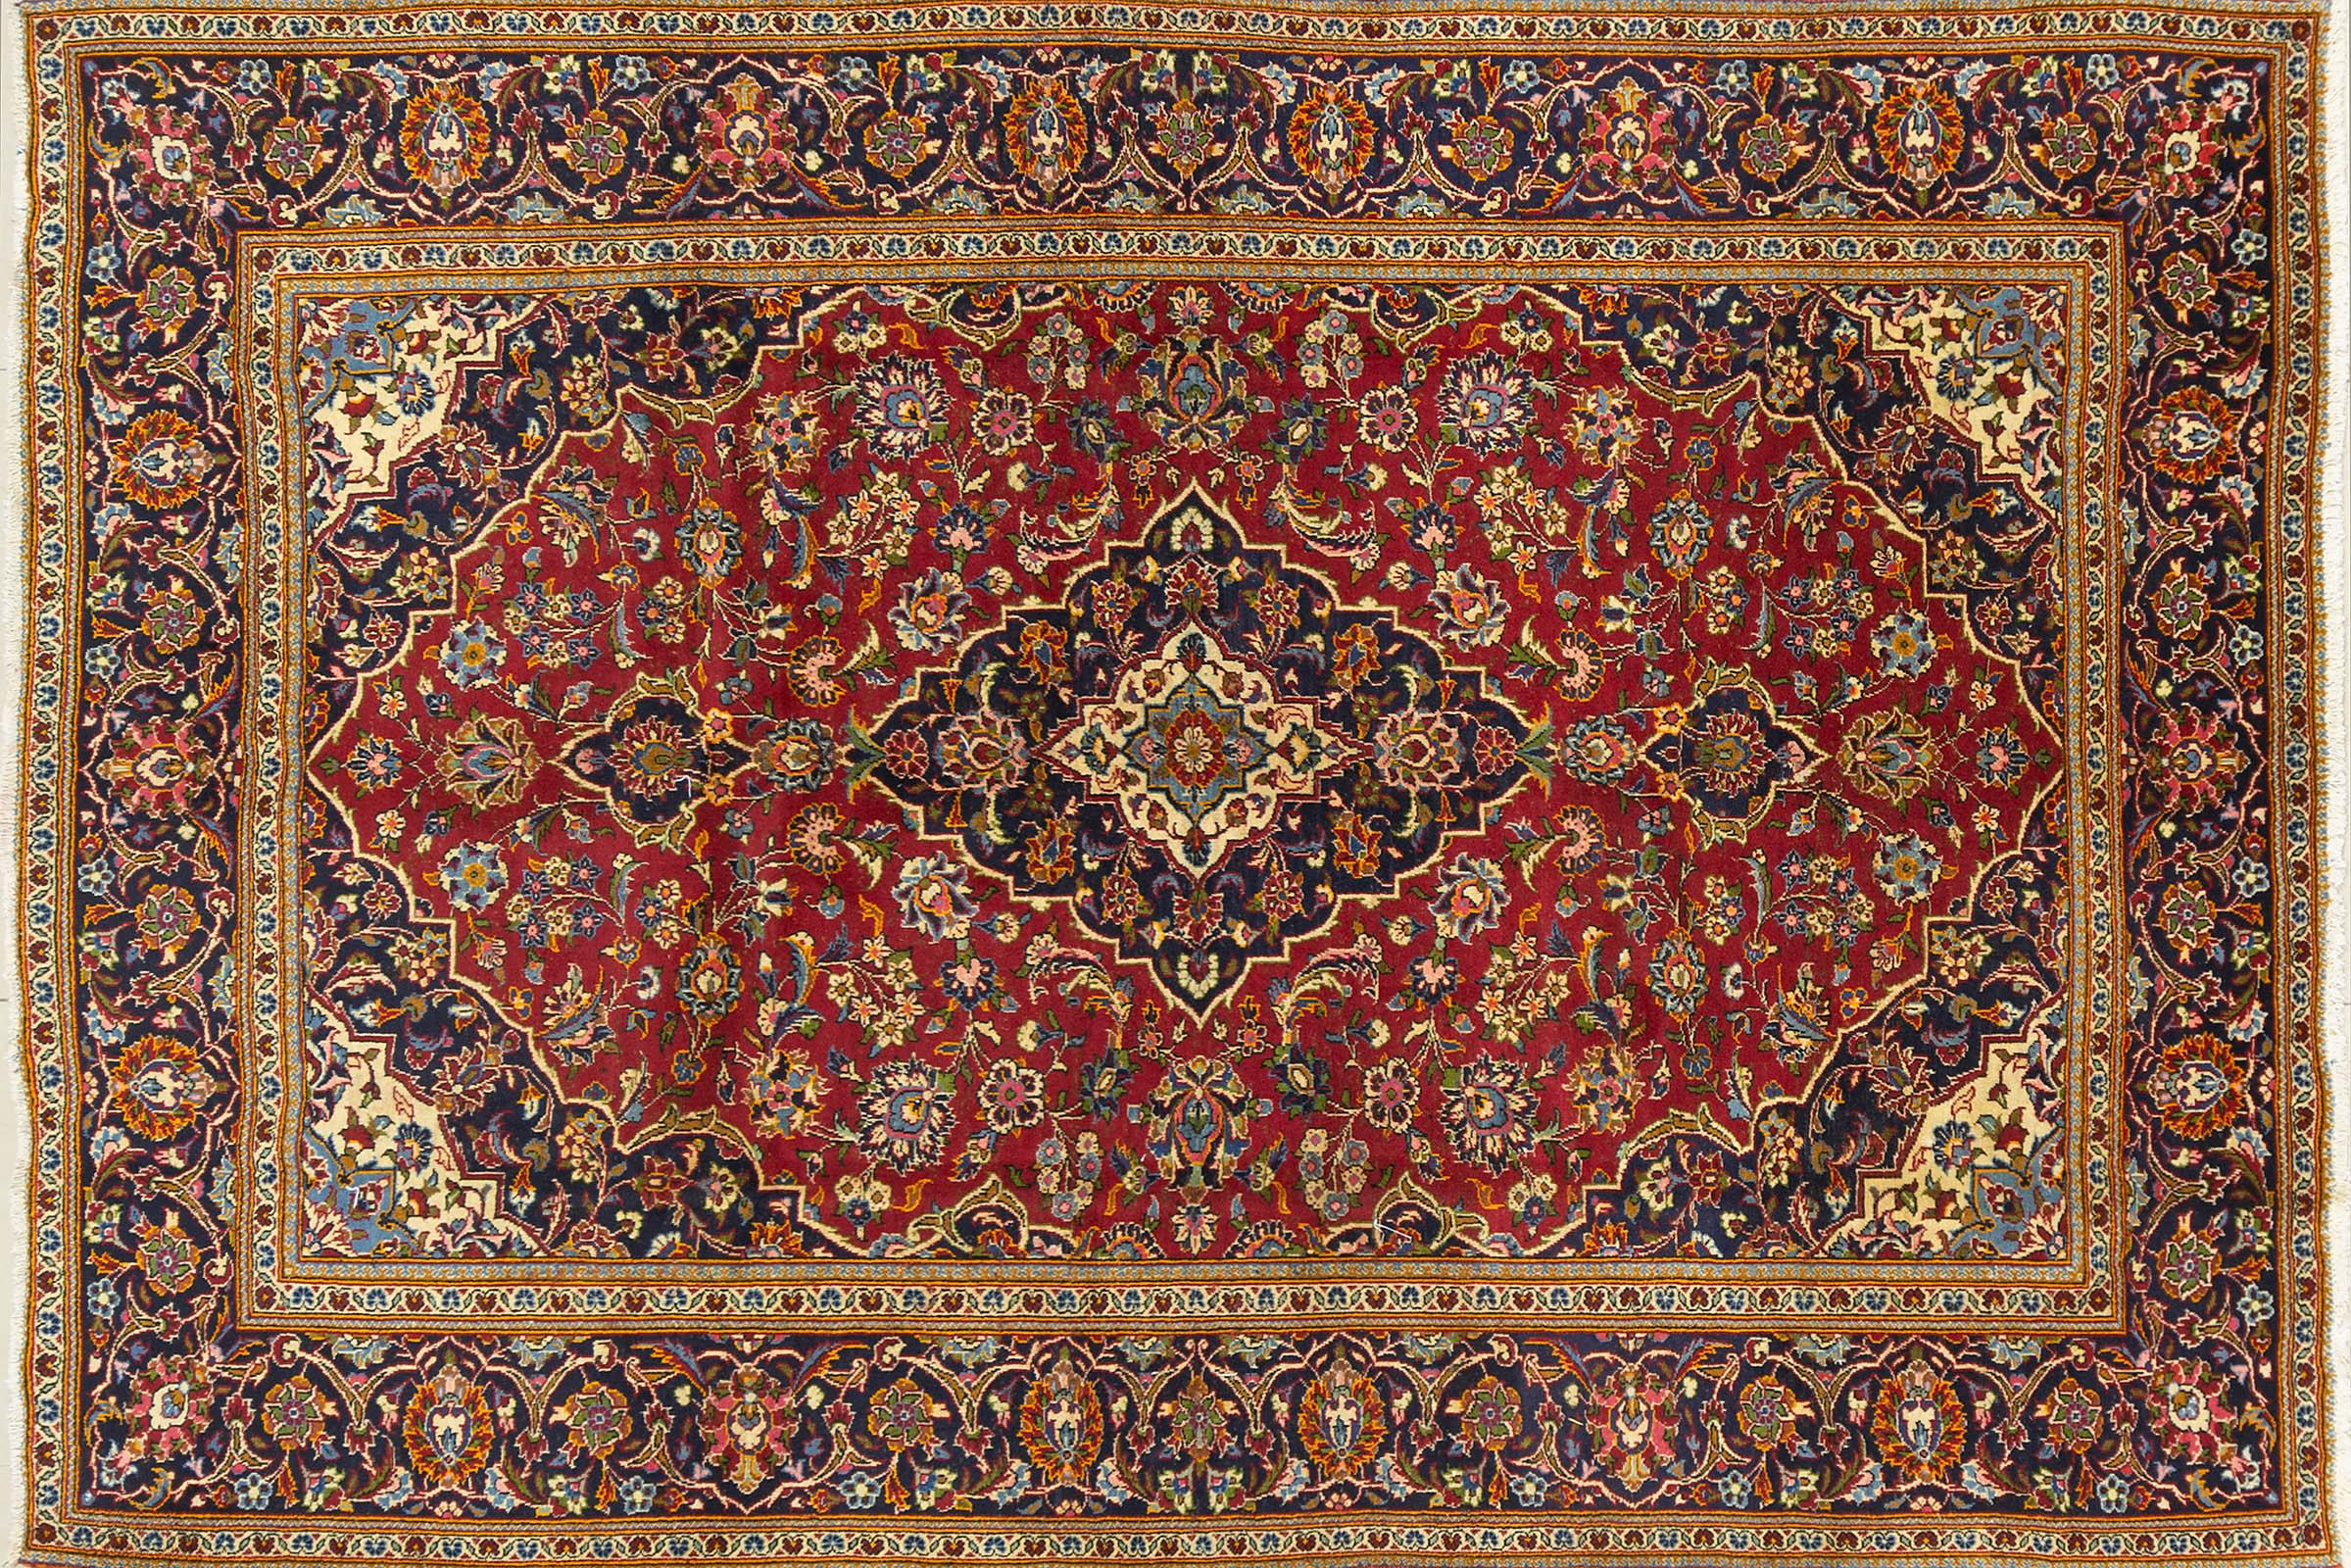 A Persian Hand Knotted Kashan Carpet, 295 x 207